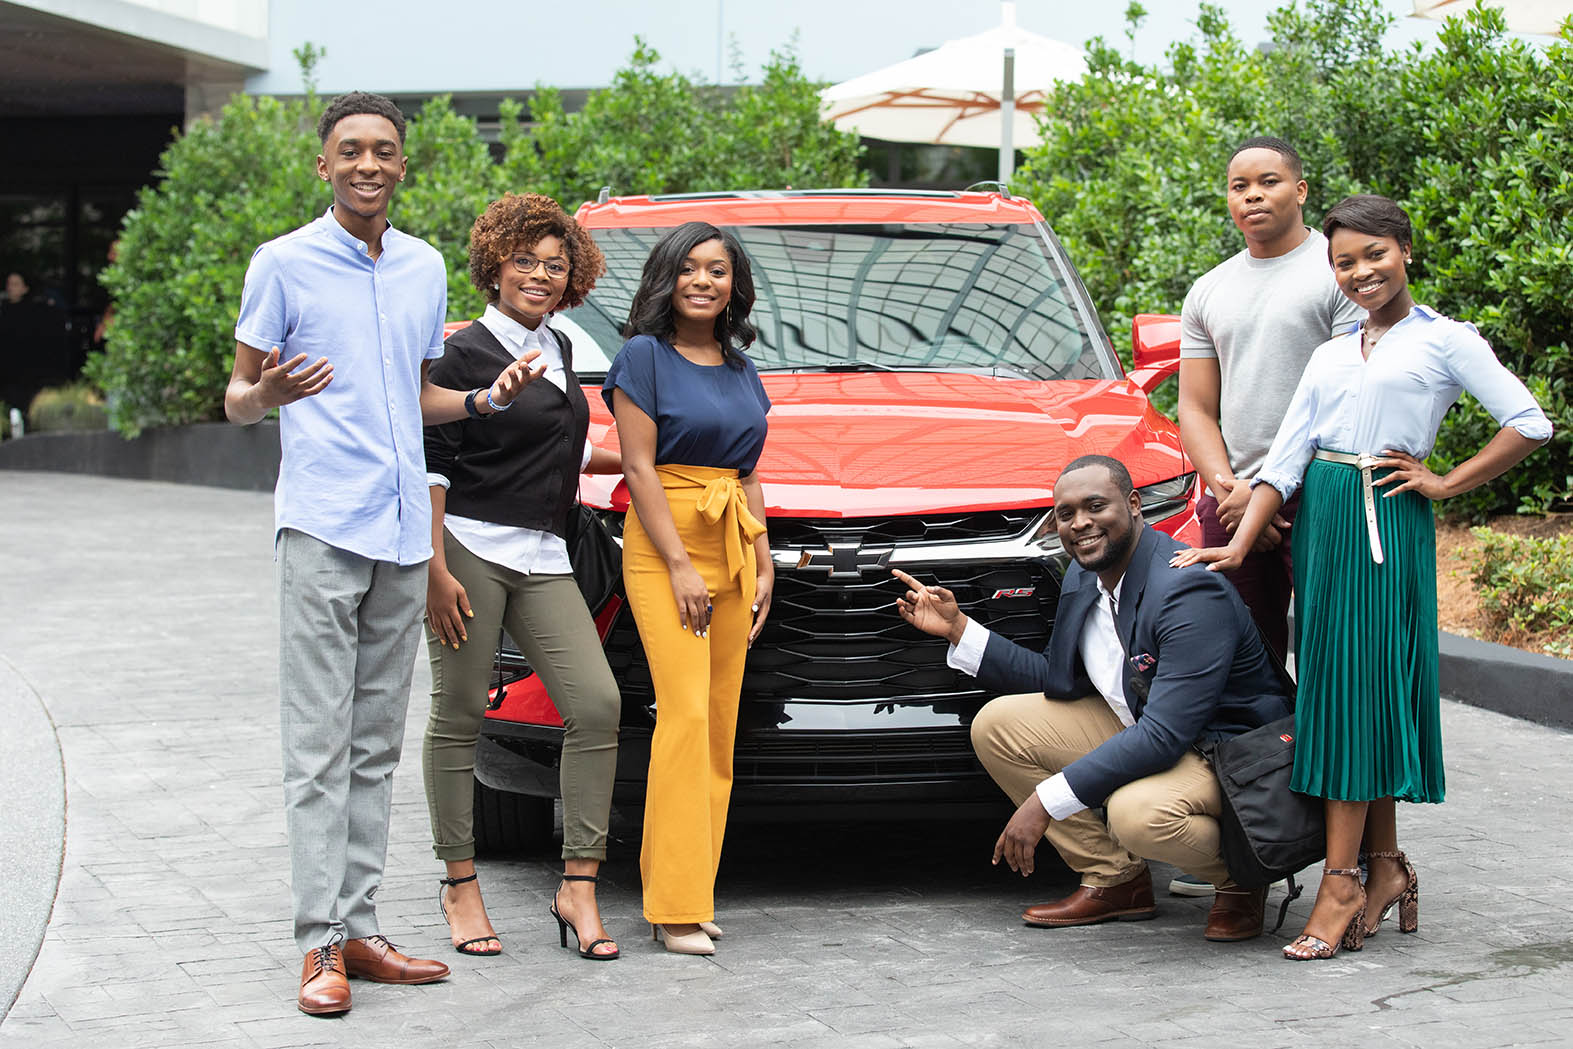 Chevrolet announced on Friday, June 7 the 2019 Discover the Unexpected Fellows (left to right): Elae Hill (North Carolina A&T), Sharon Joy Washington (Florida A&M), Tyla Barnes (Hampton University), Tedarius Abrams (Bethune-Cookman University), Emani Nichols (Morehouse College) and Miana Massey (Howard University) pictured with the all-new 2019 Chevrolet Blazer. In partnership with the National Newspapers Publishers Association, these young aspiring journalists will embark on an 8-week road trip to discover and share positive stories within African American communities.